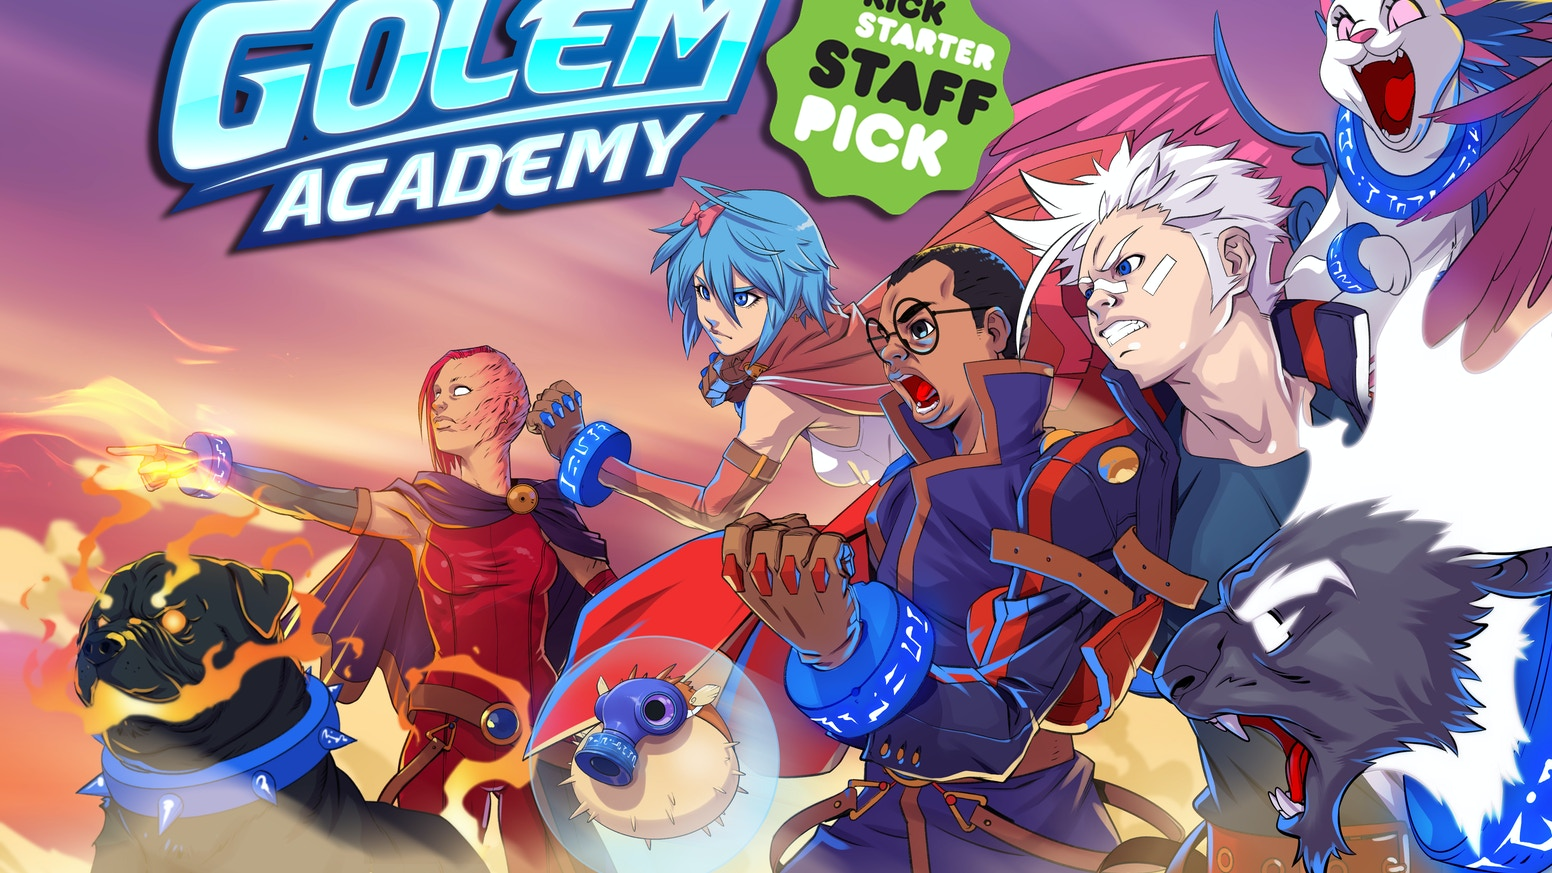 Golem Academy is an independently developed action anime card game! It takes our favorite anime attributes and forces them into a game.